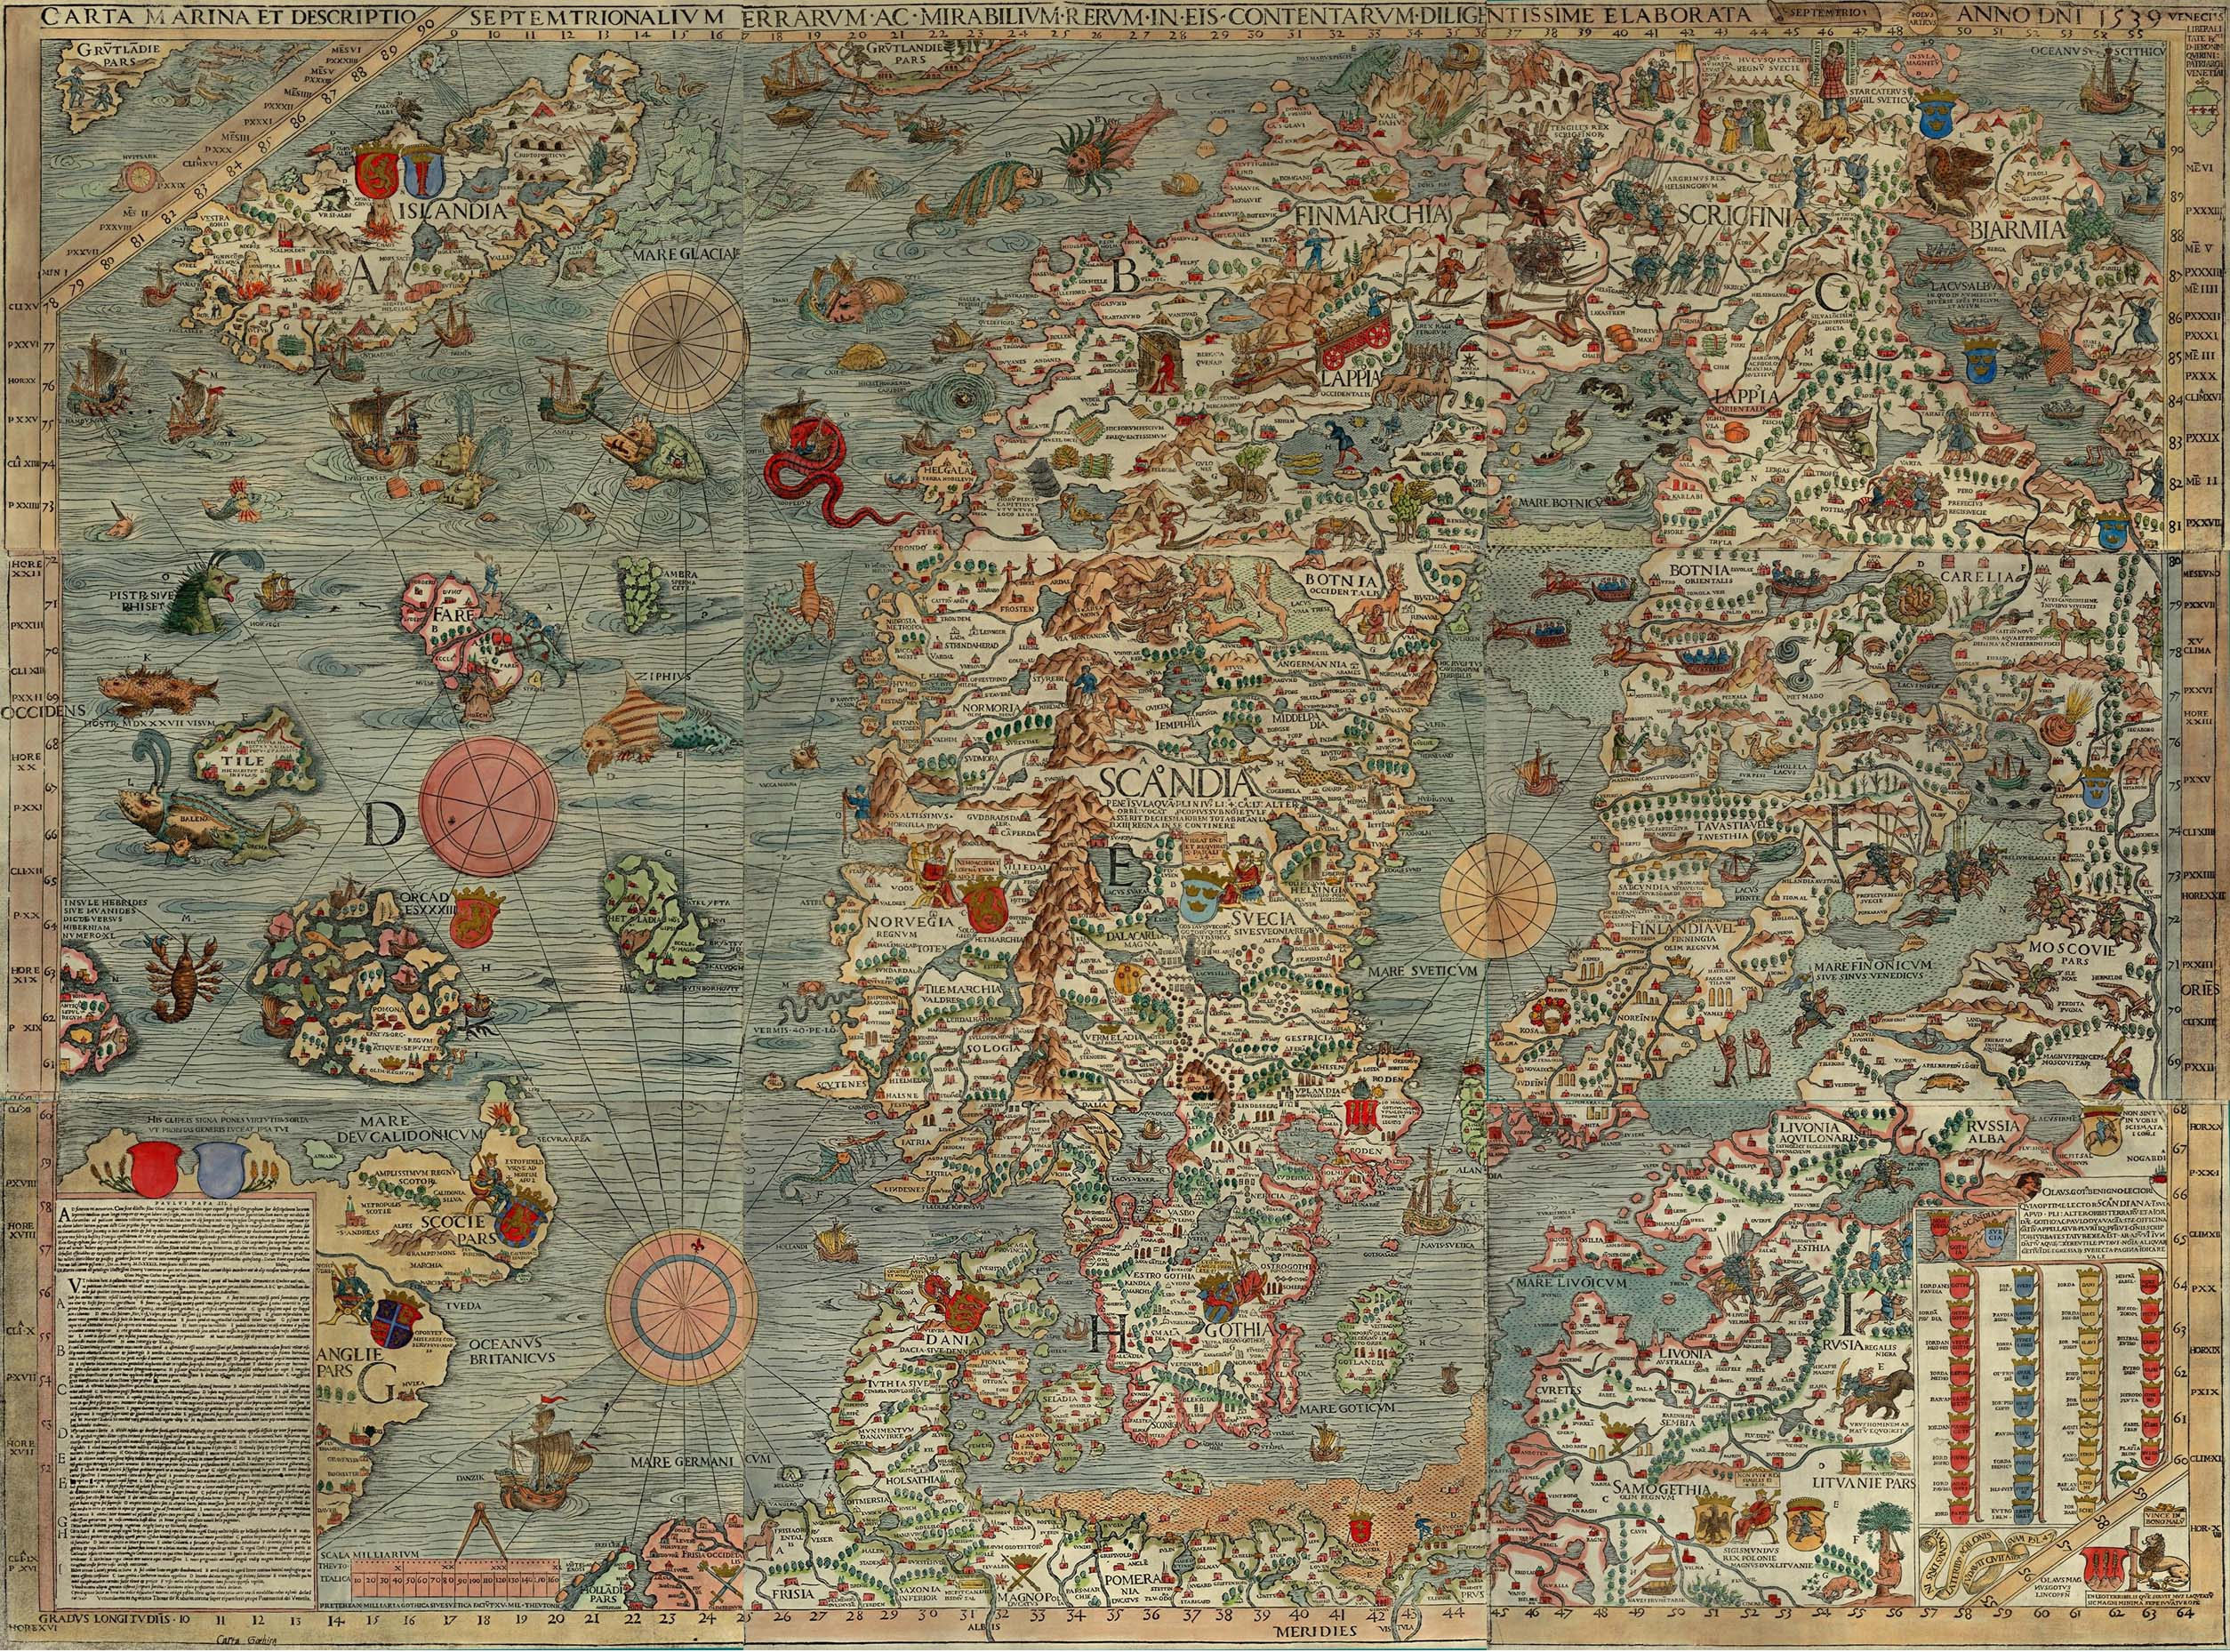 illuminated map of early me val scandinavia author hugh b long